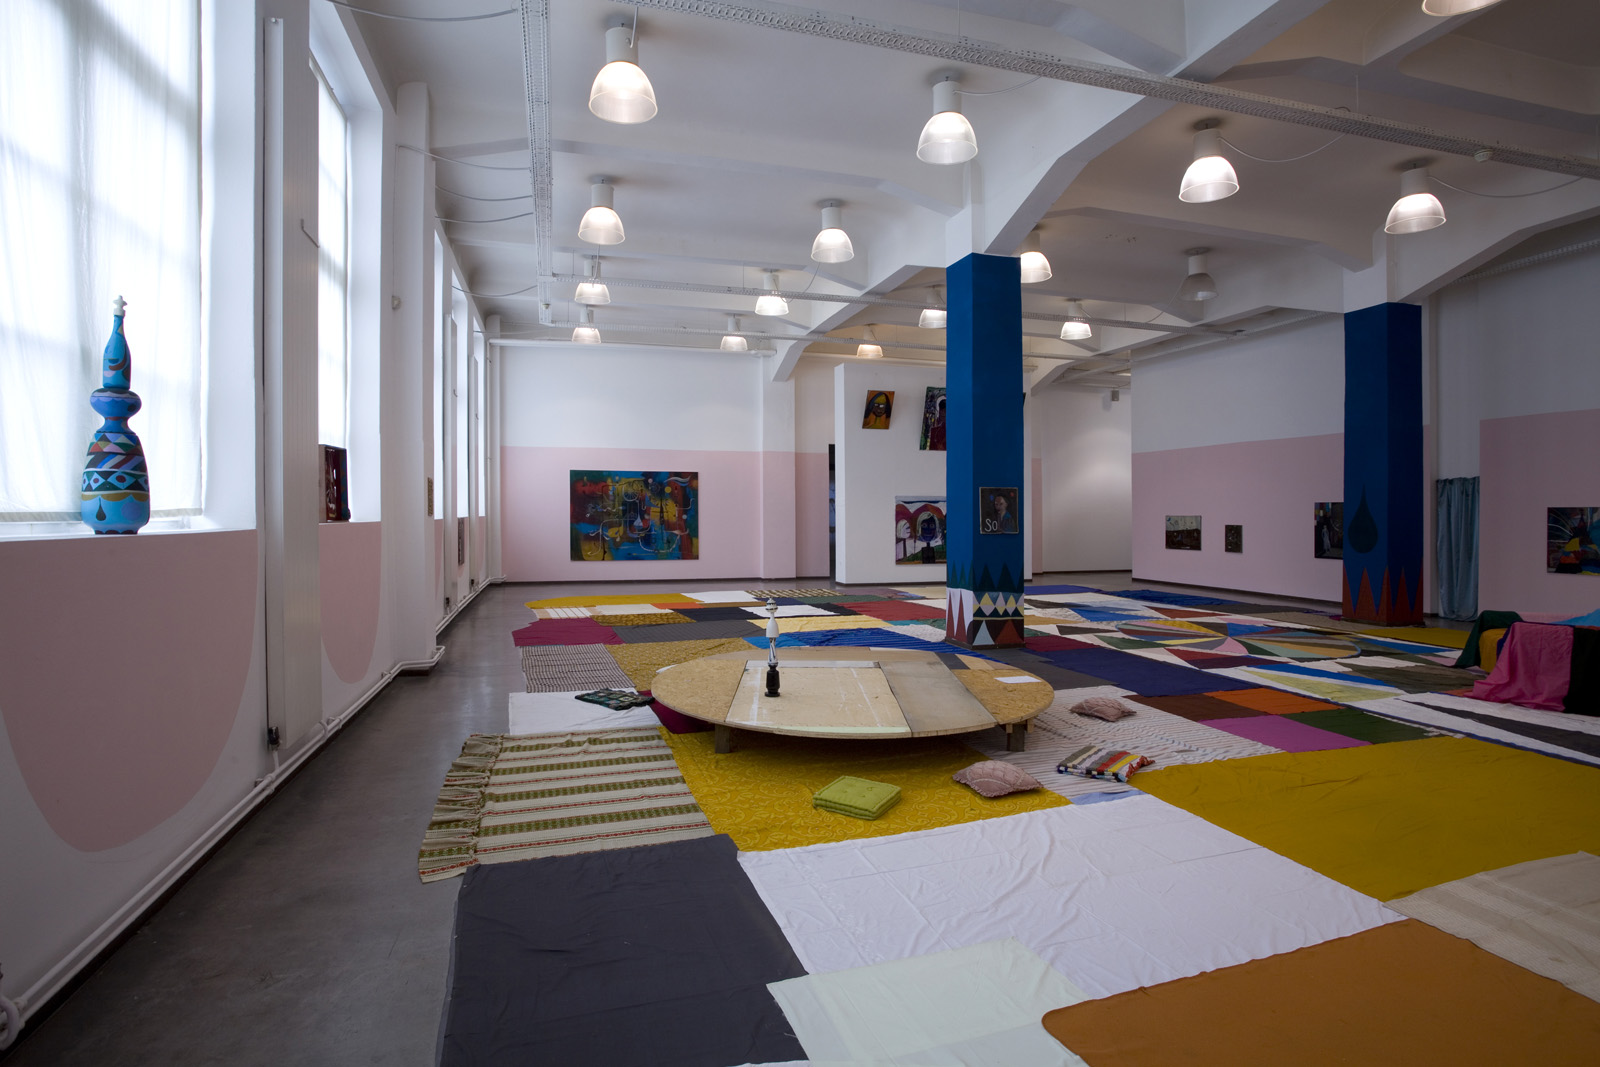 Installation view, Namovala, Kunsthaus Hamburg, 2012